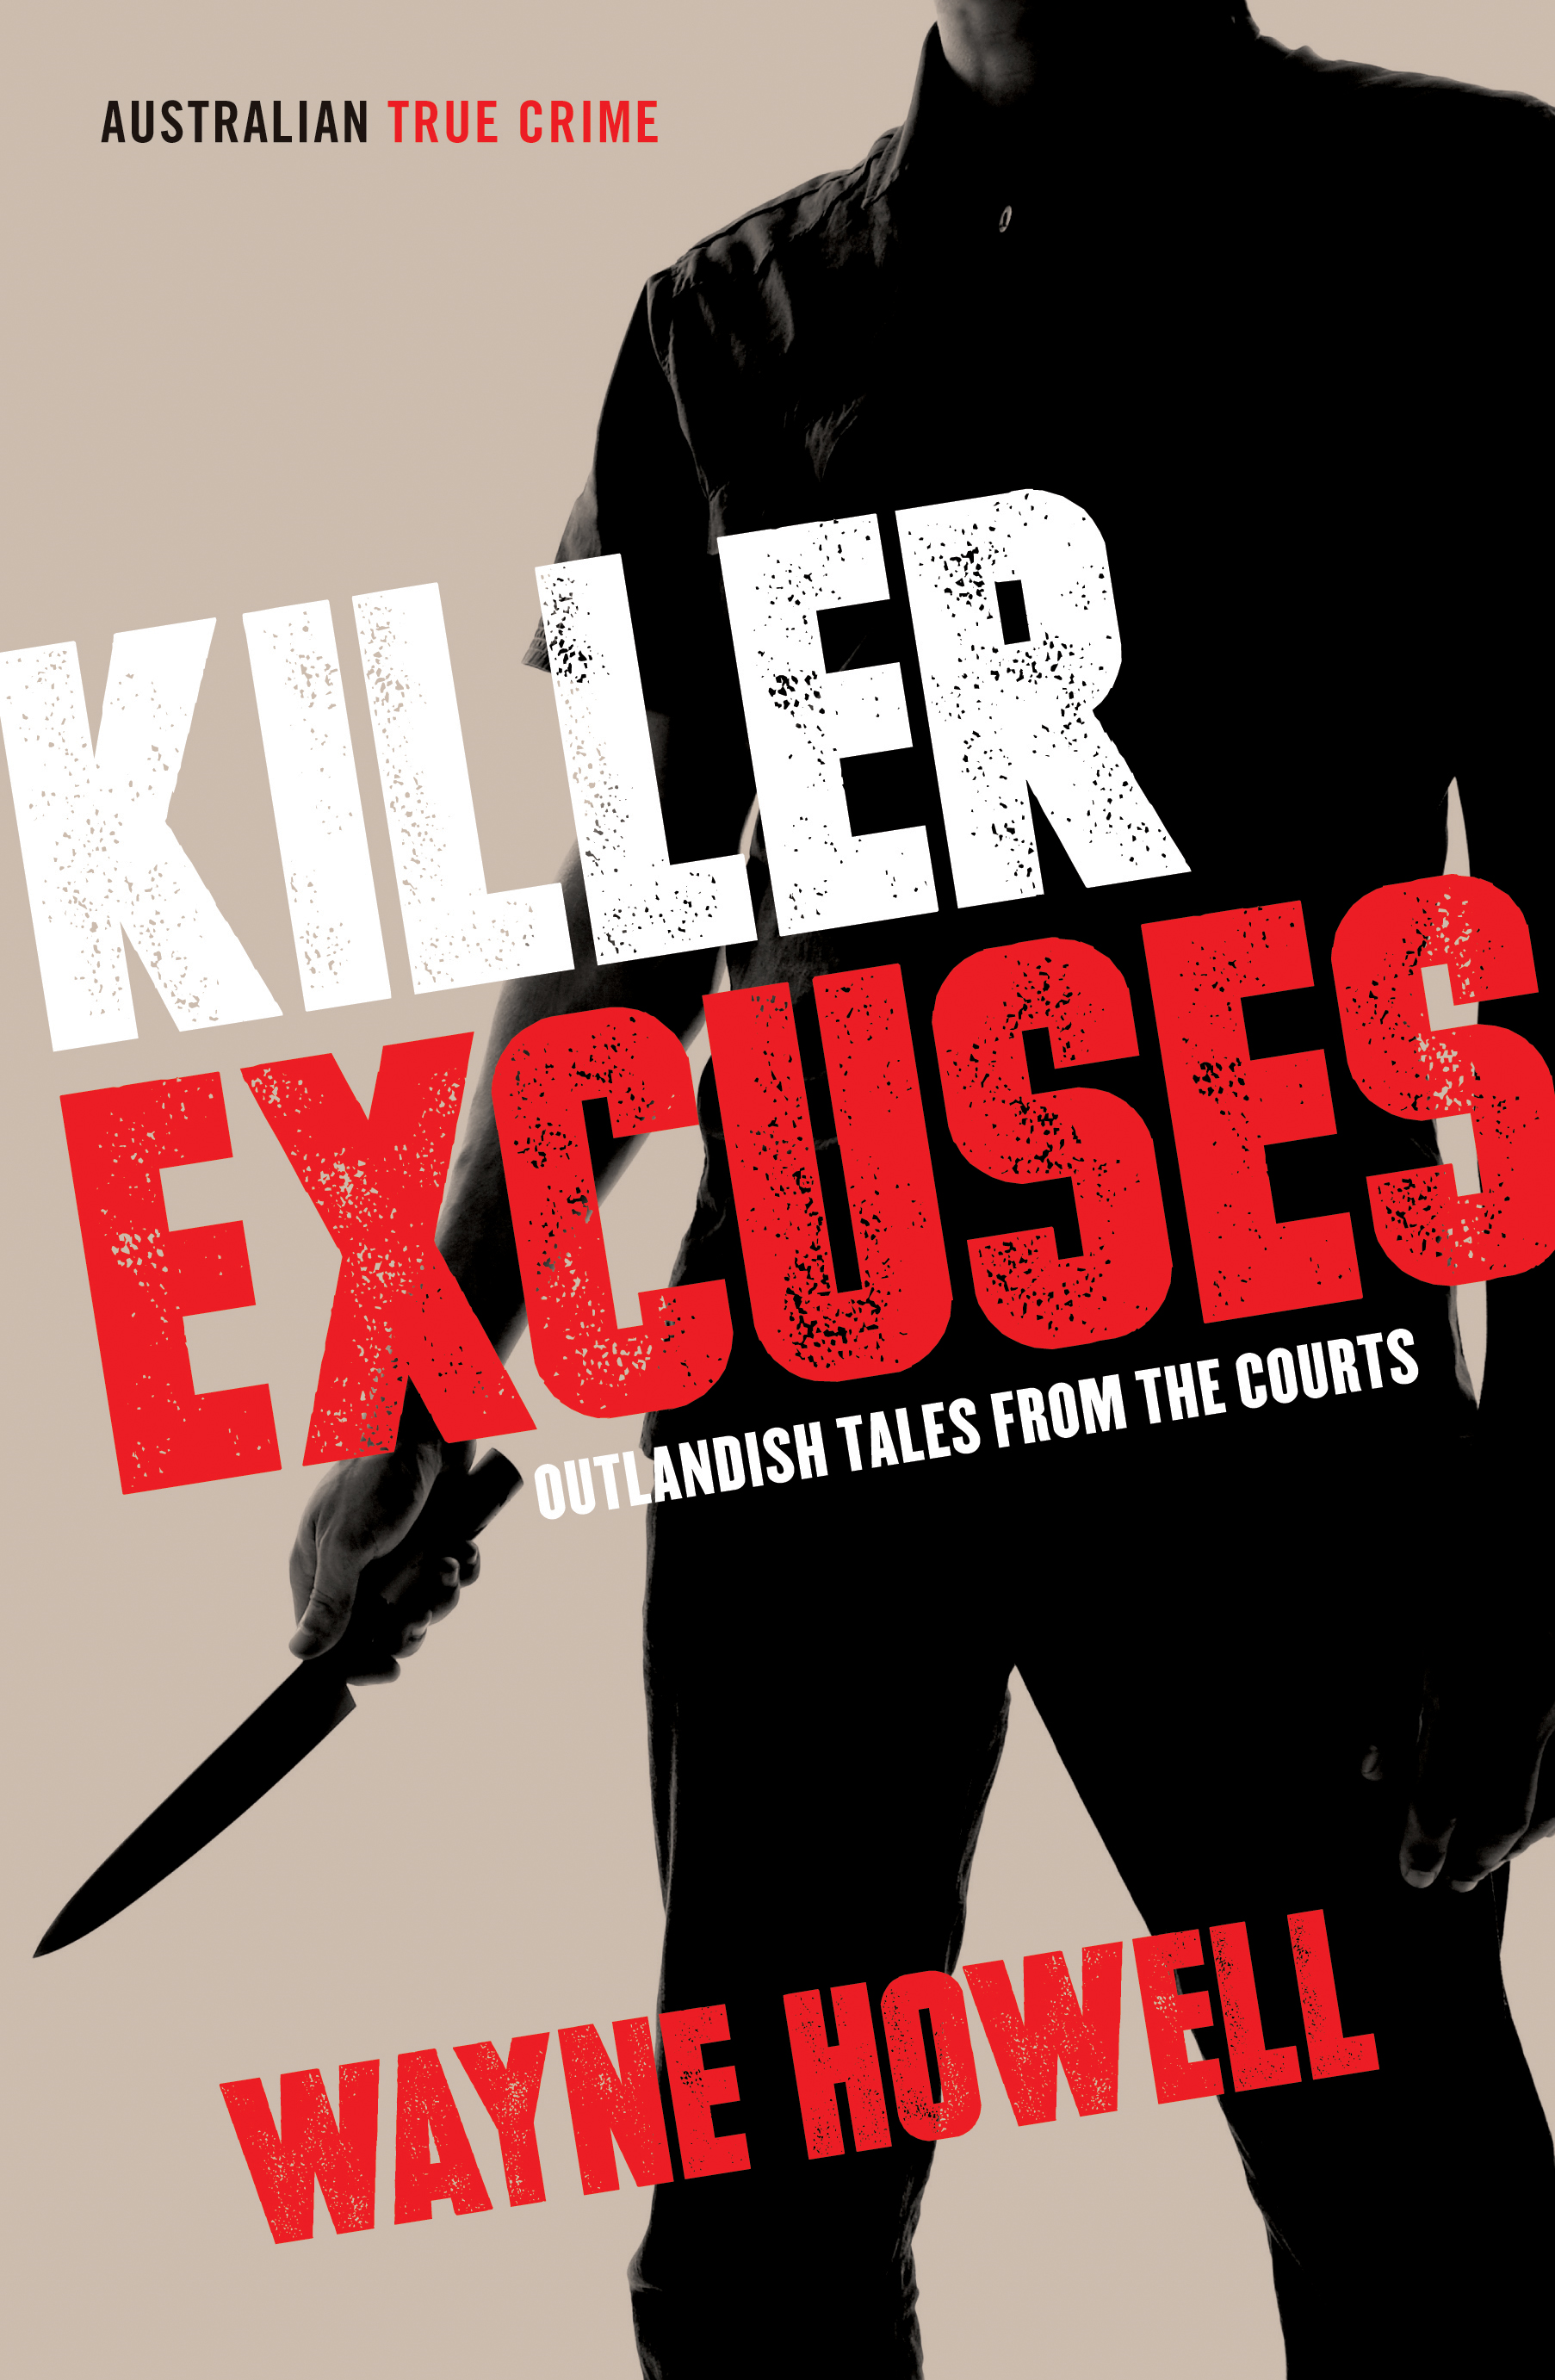 Killer Excuses: Outlandish Tales from the Courts